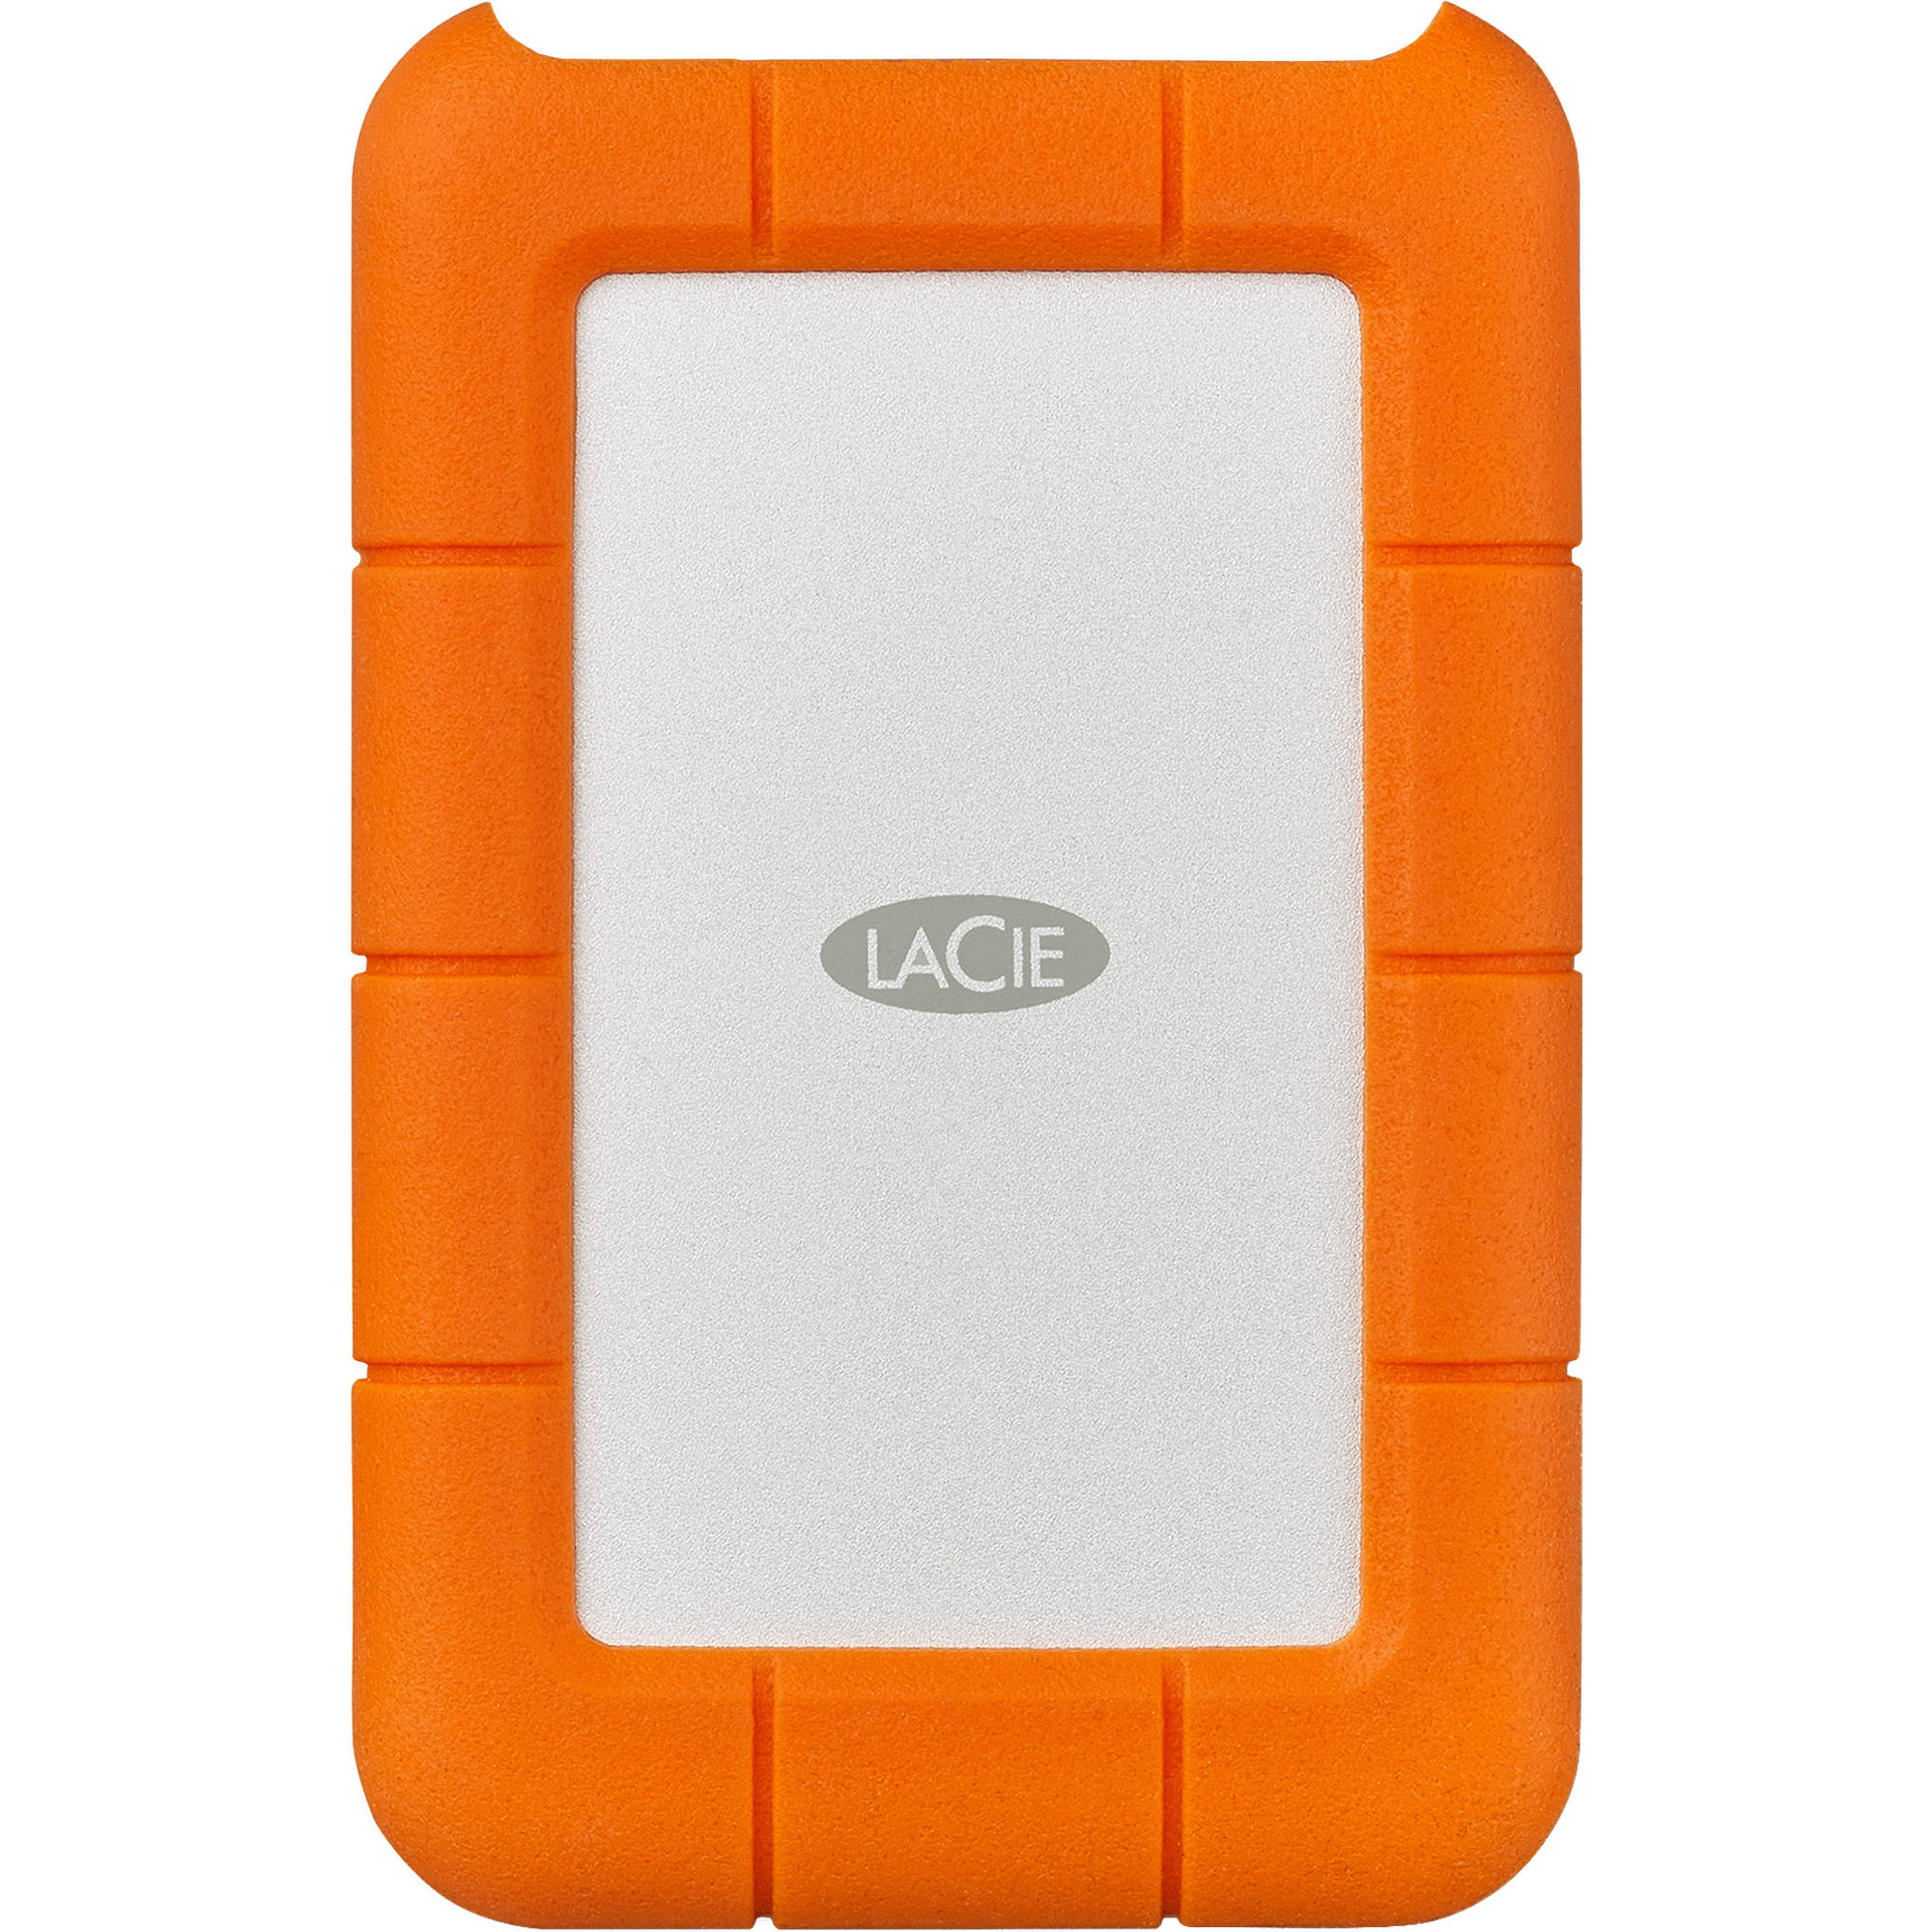 LaCie 5TB Rugged USB 3.0 Type-C External Hard Drive Digital Media LACIE